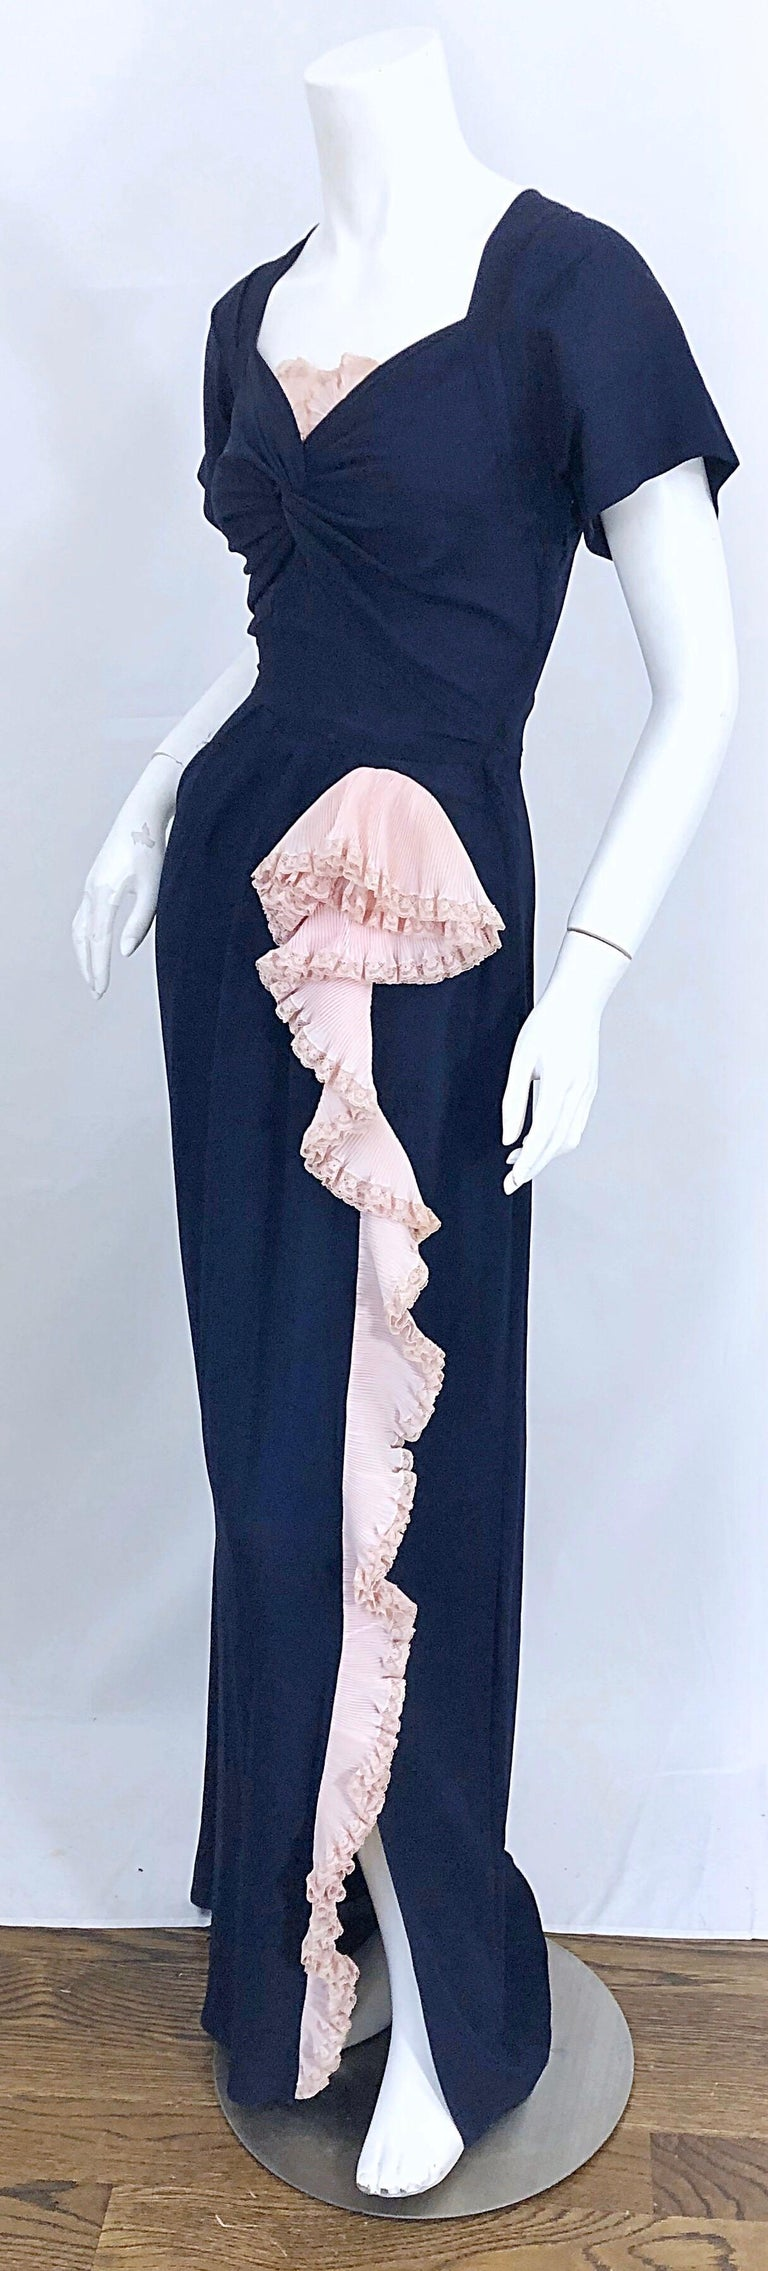 Women's 1940s Demi Couture Navy Blue + Pale Pink Short Sleeve 40s Vintage Gown / Dress For Sale